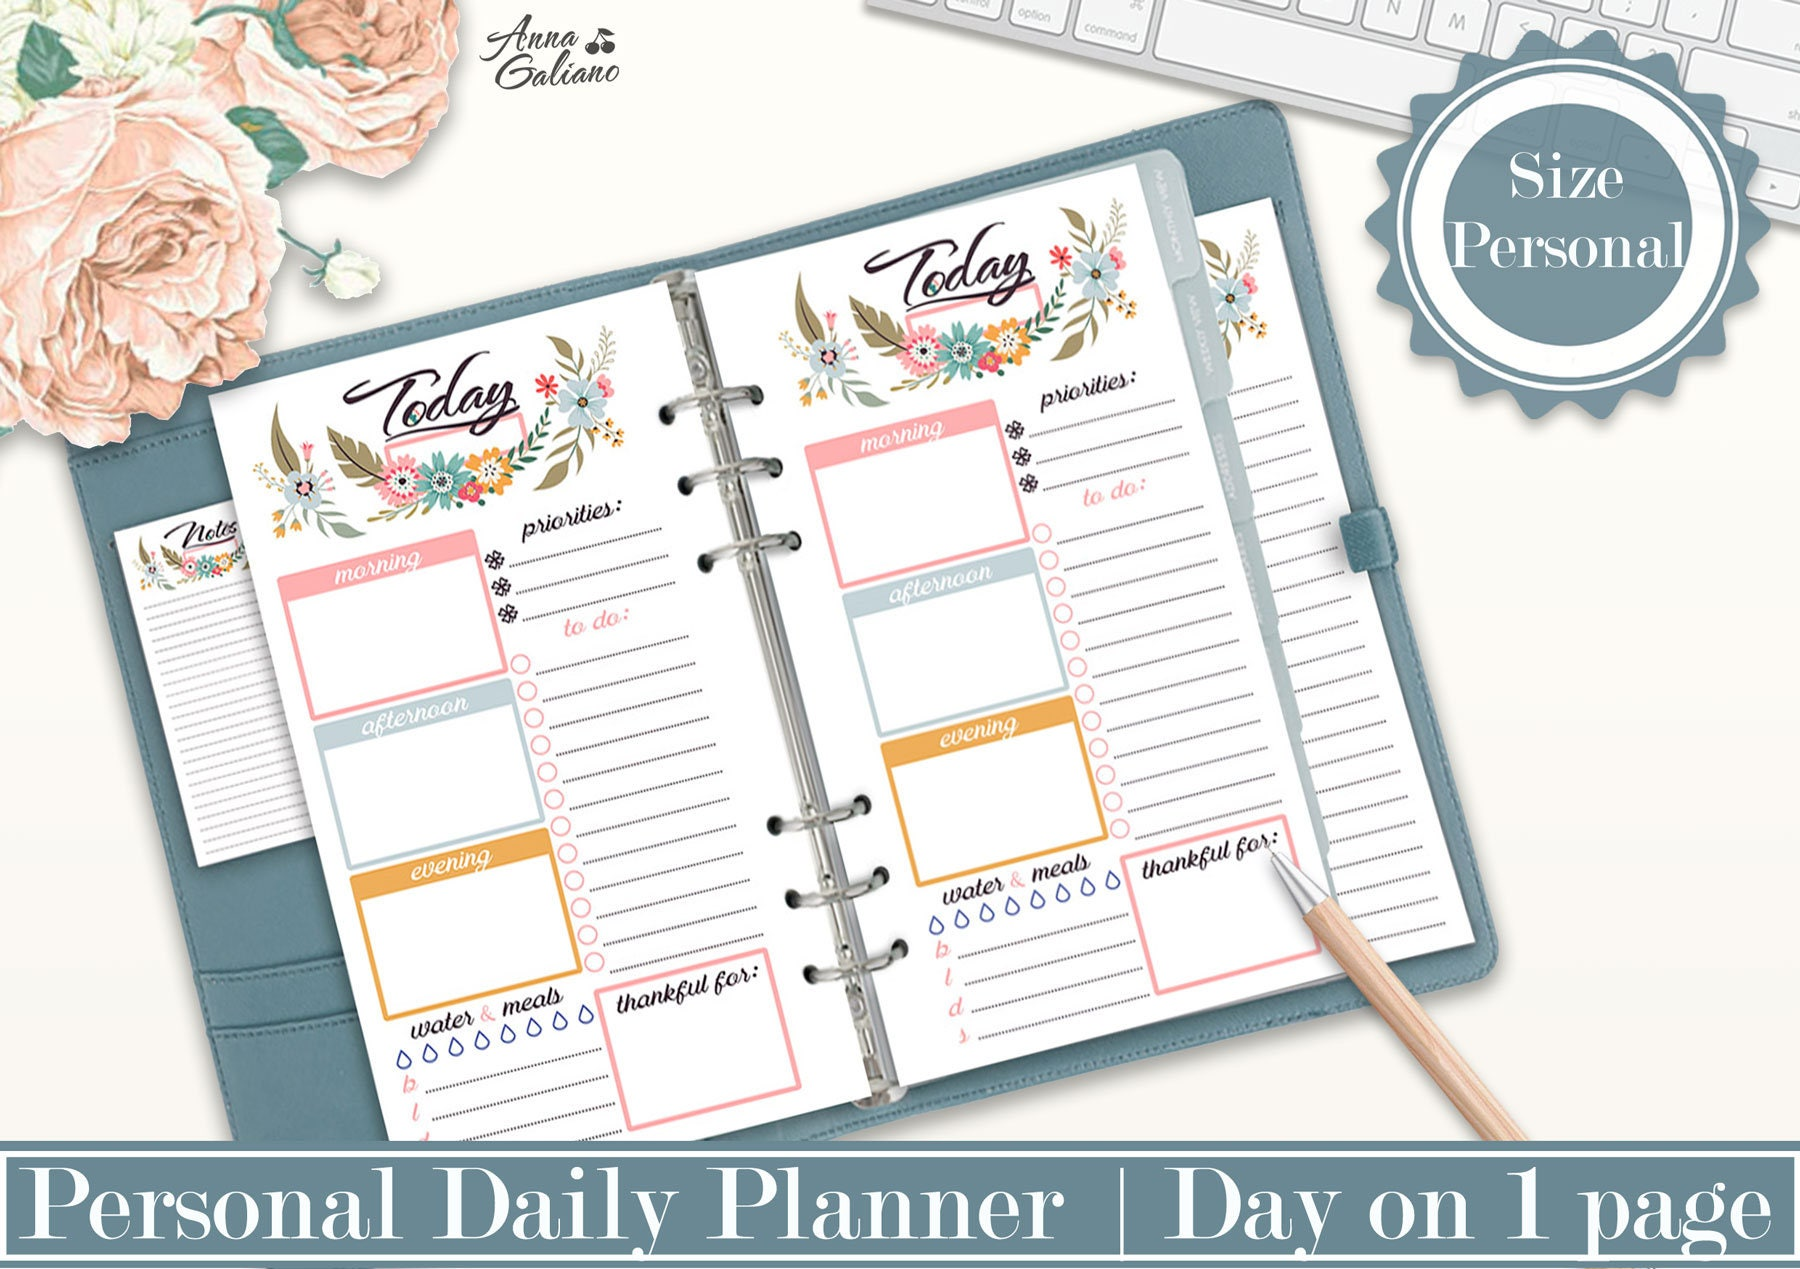 It's just an image of Stupendous Planner Inserts Printable